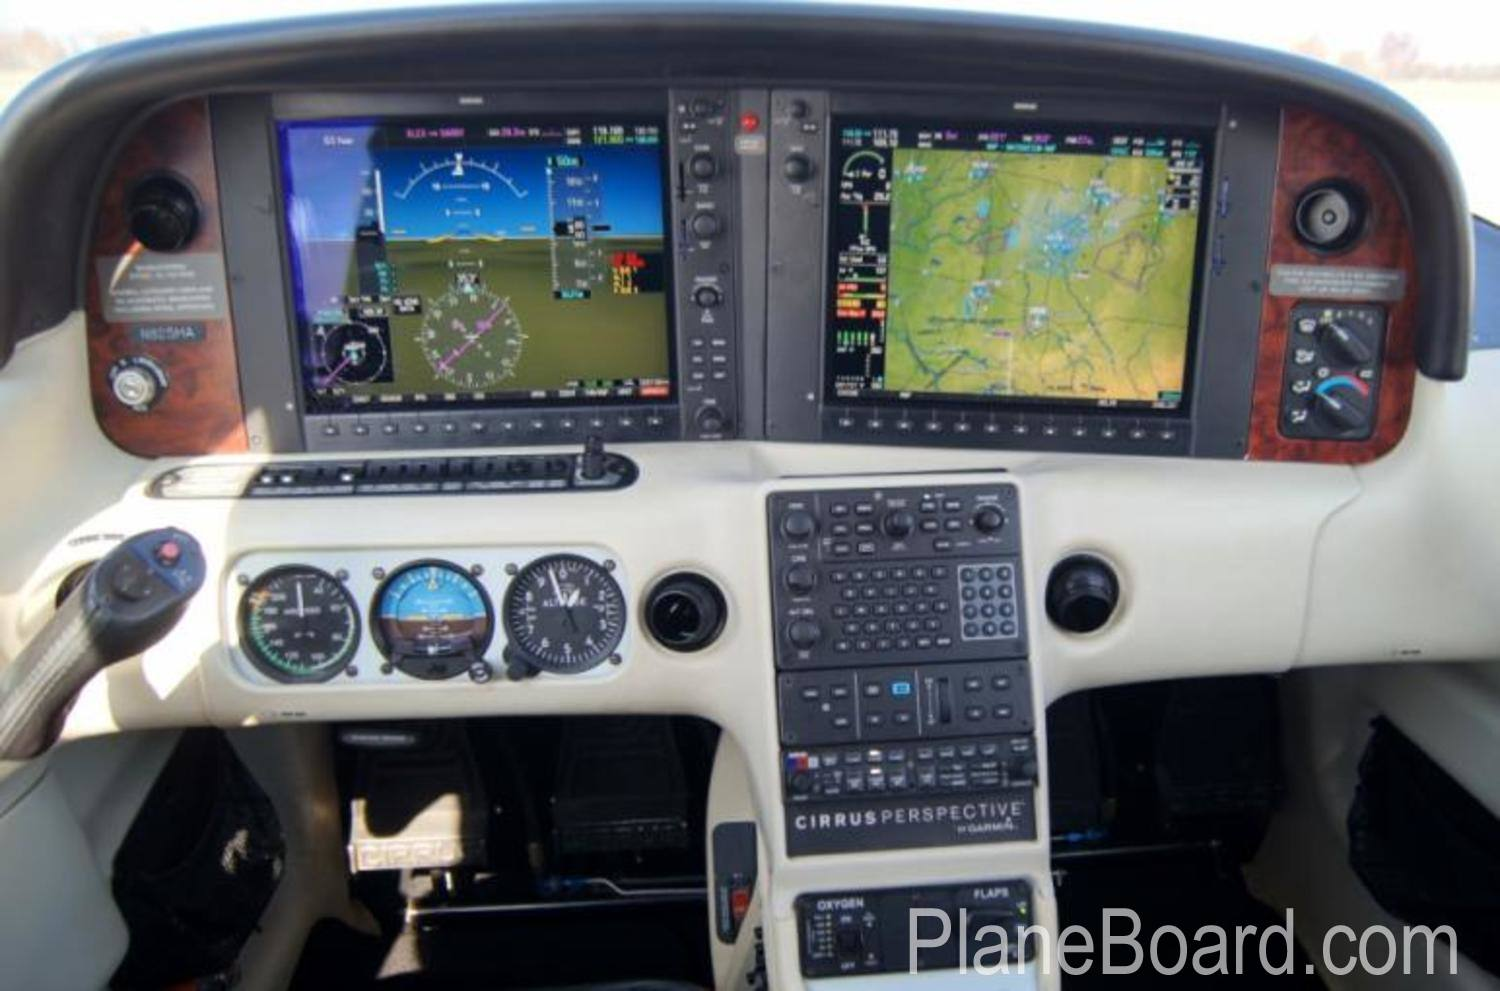 2009 Cirrus SR22-G3 Turbo GTS interior 0